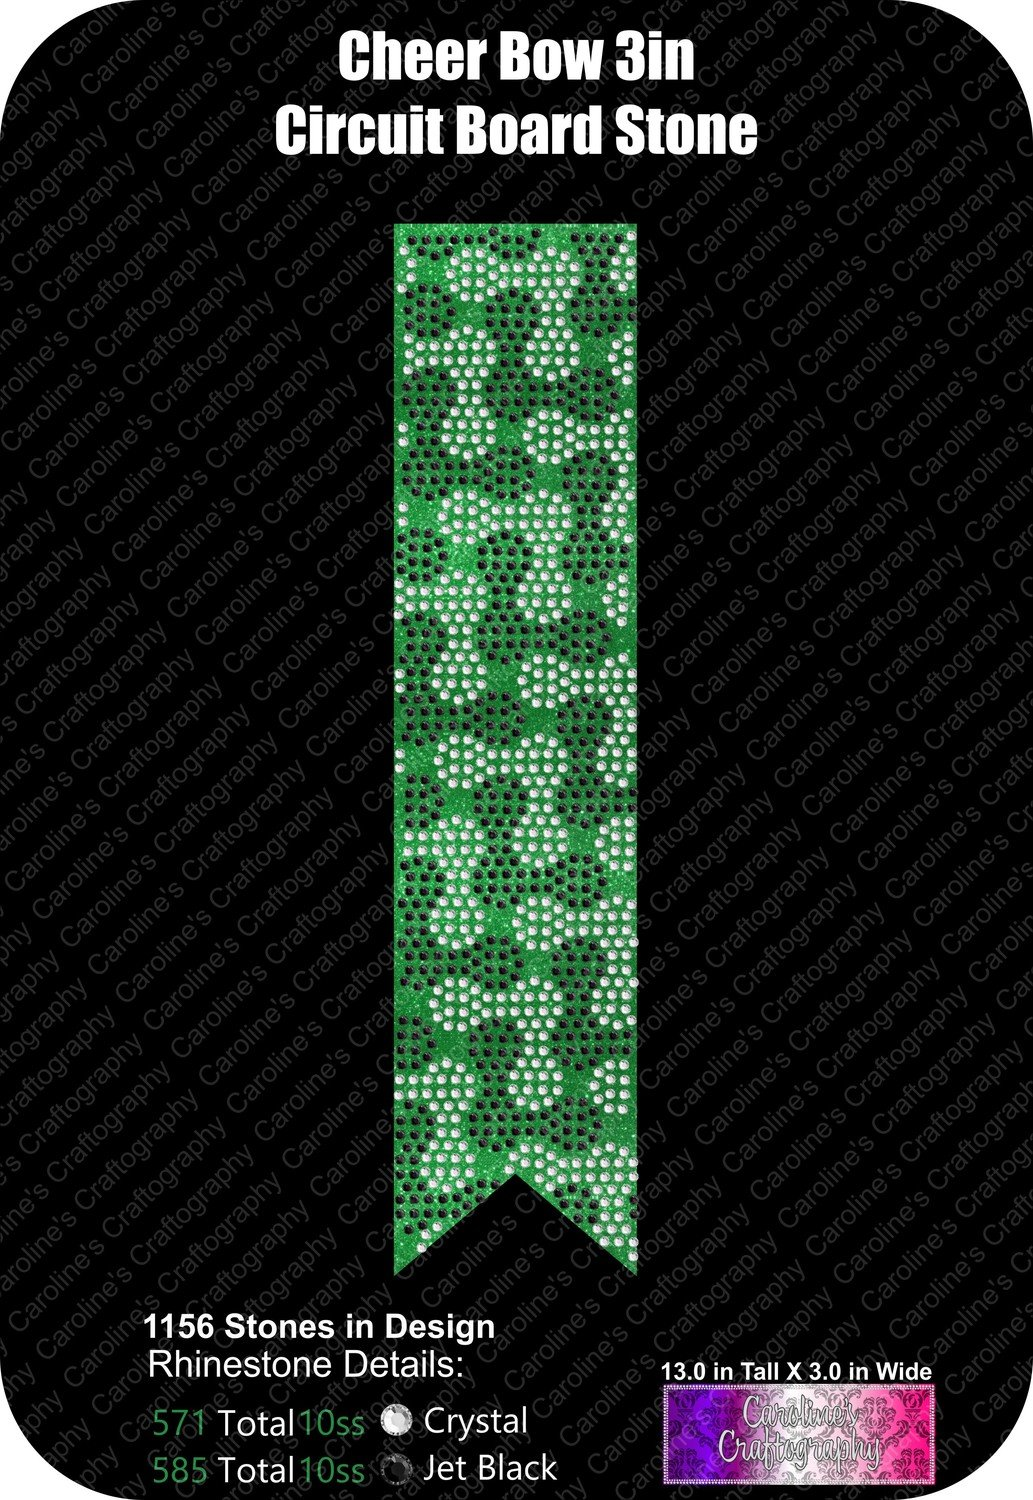 Circuit Board 3in Stone Cheer Bow